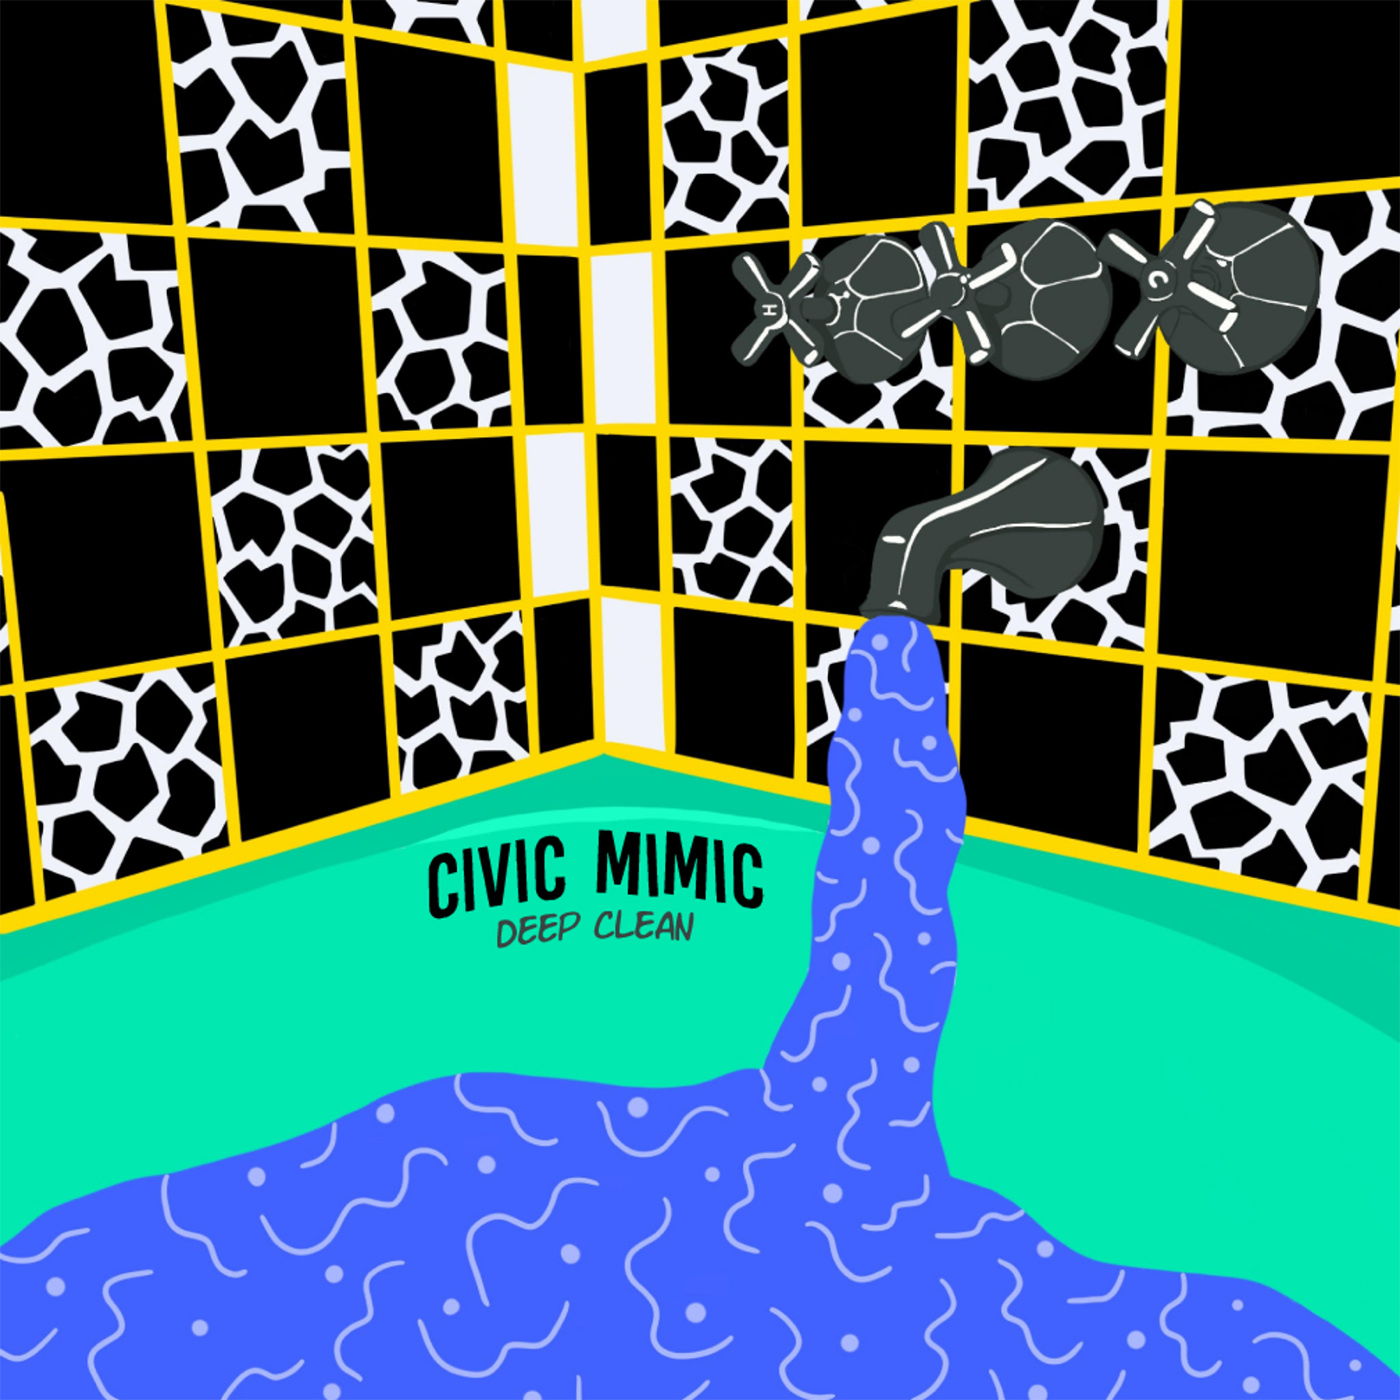 Civic Mimic